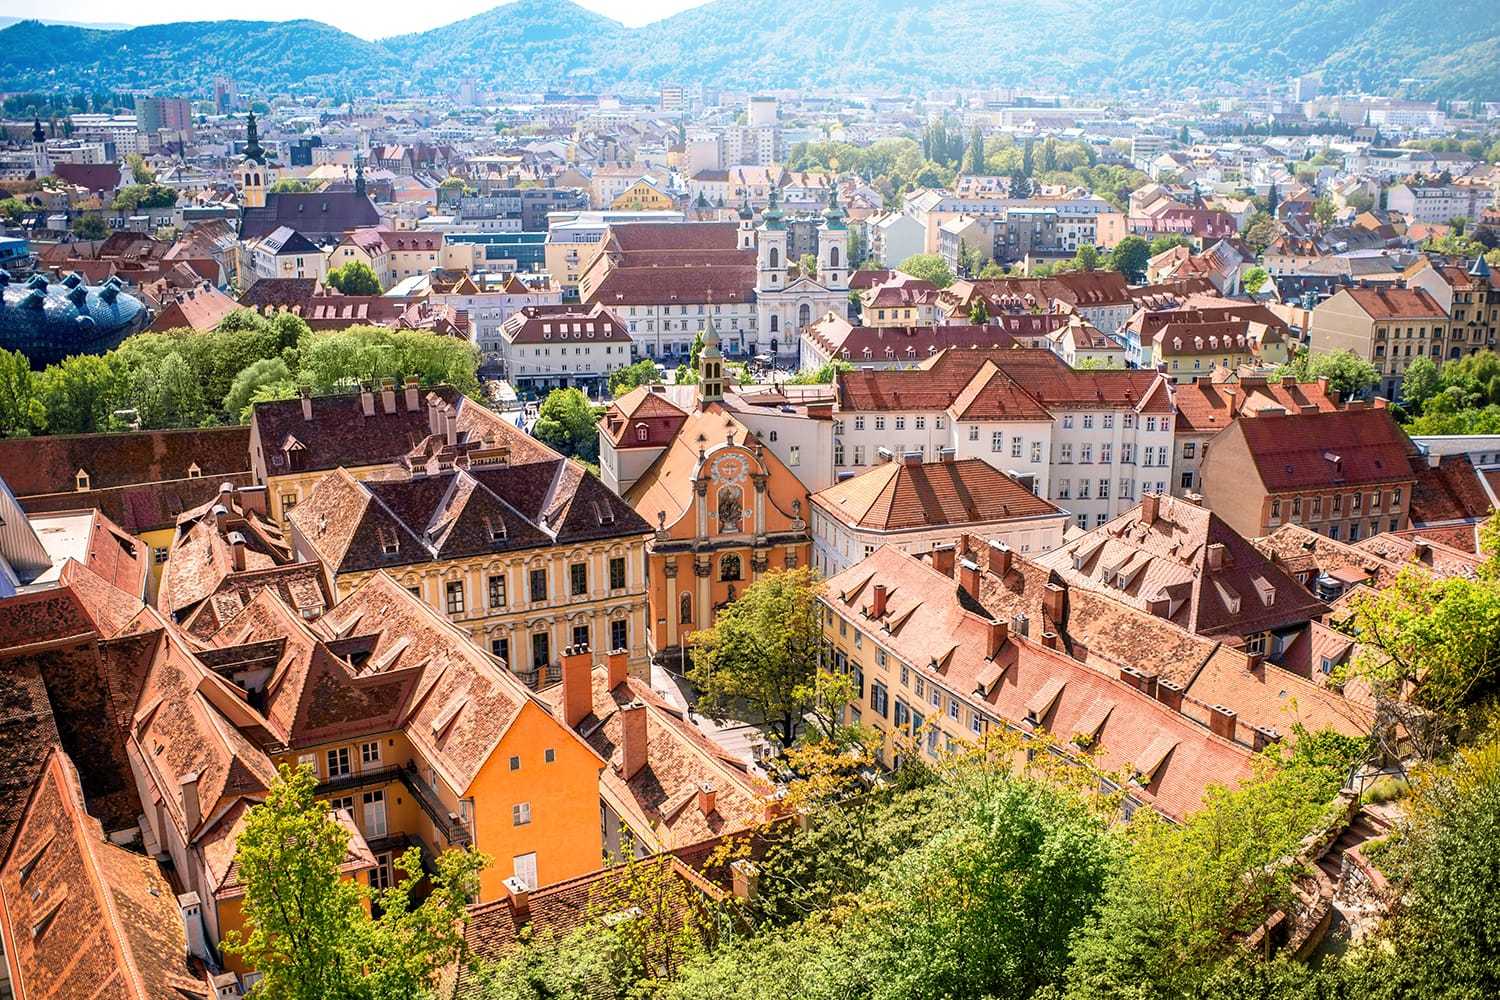 Aerial view of Graz, Austria as soon from Schlossberg